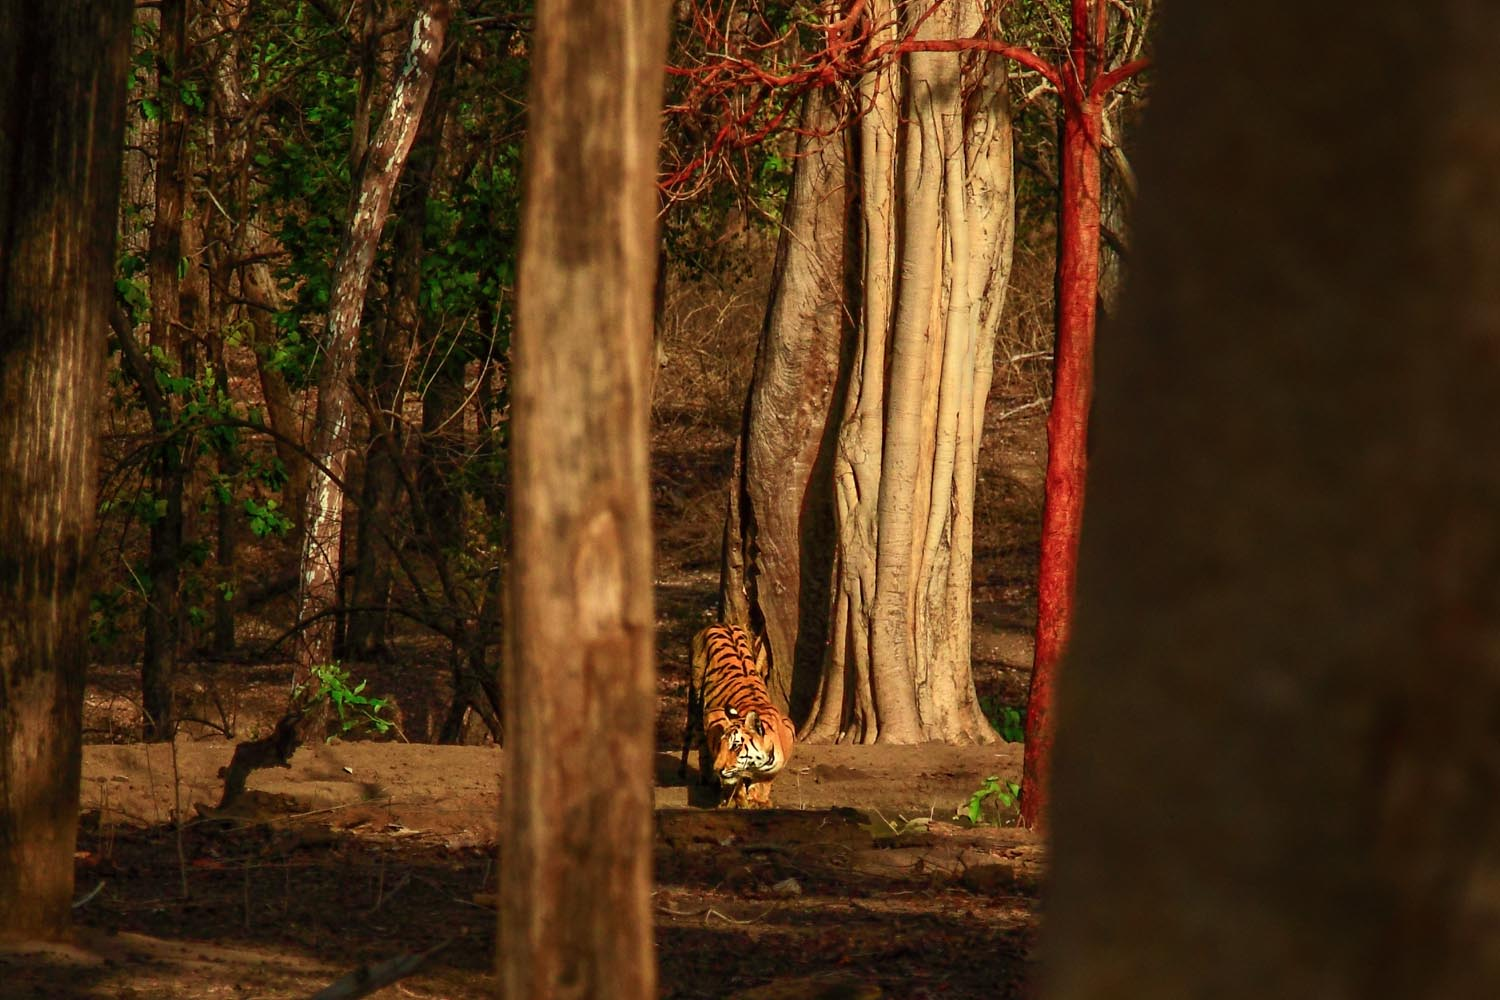 Collarwali's cub at a watering hole in Pench